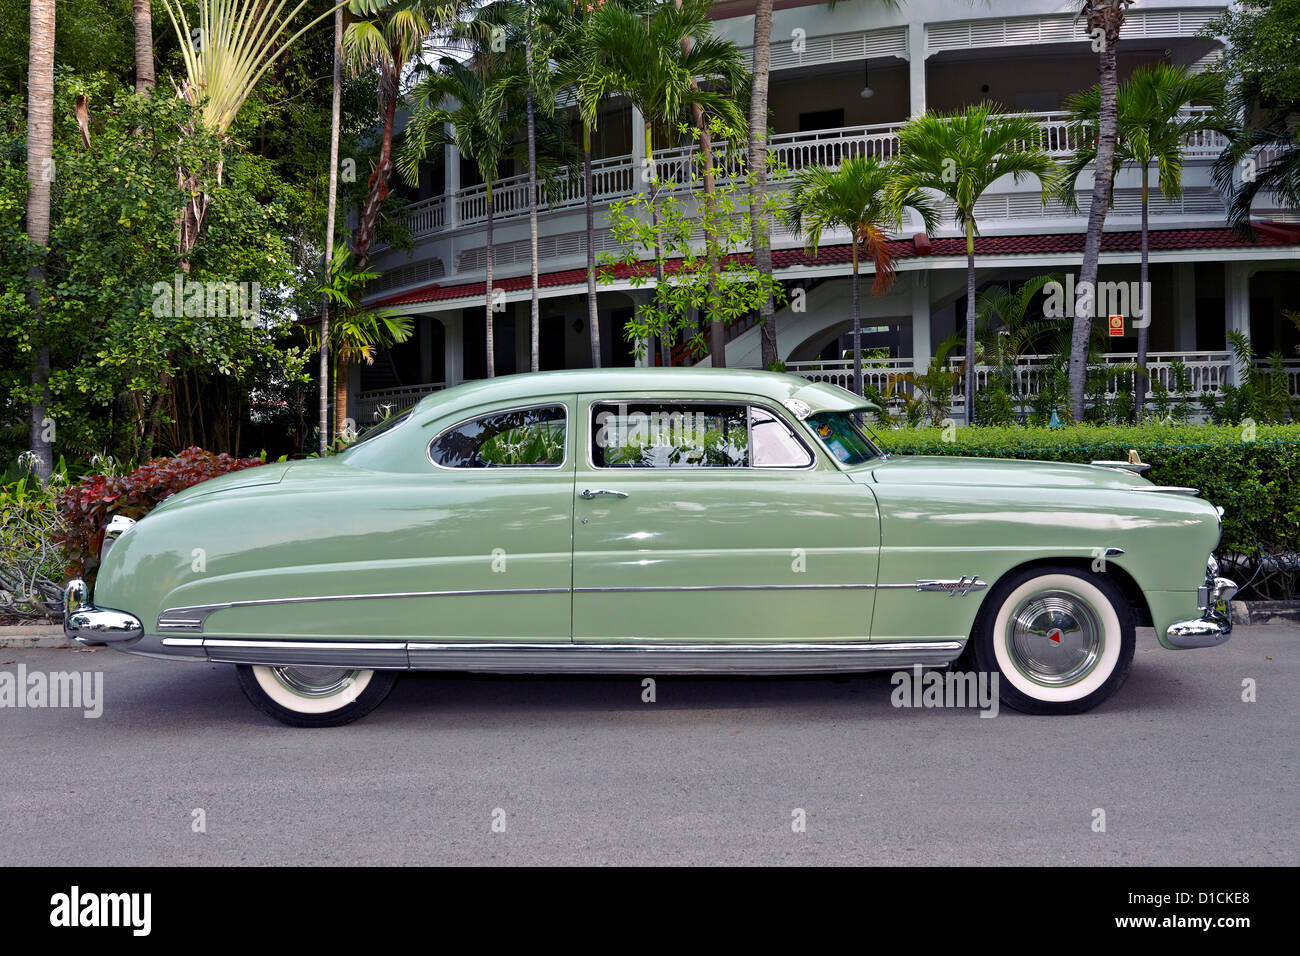 1951 hudson hornet vintage american sedan car at a concours delegance rally thailand